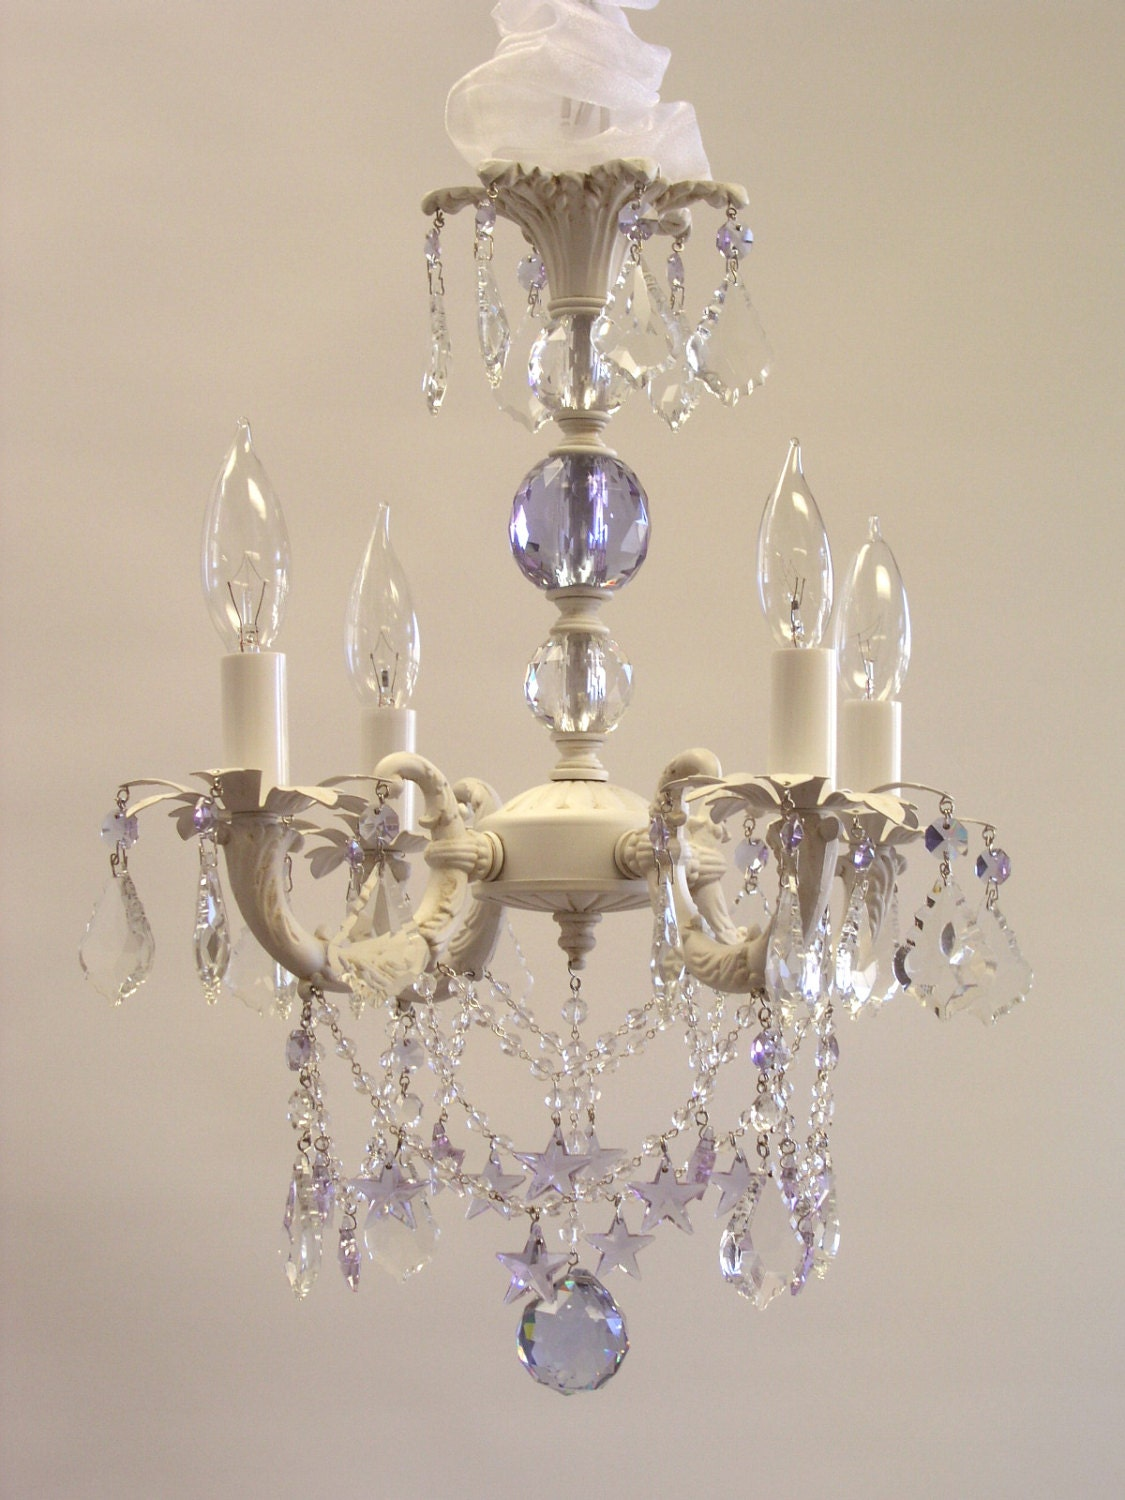 Fantastic Shabby Chic Cottage Style Mini Chandelier Sugar Plum Download Free Architecture Designs Scobabritishbridgeorg